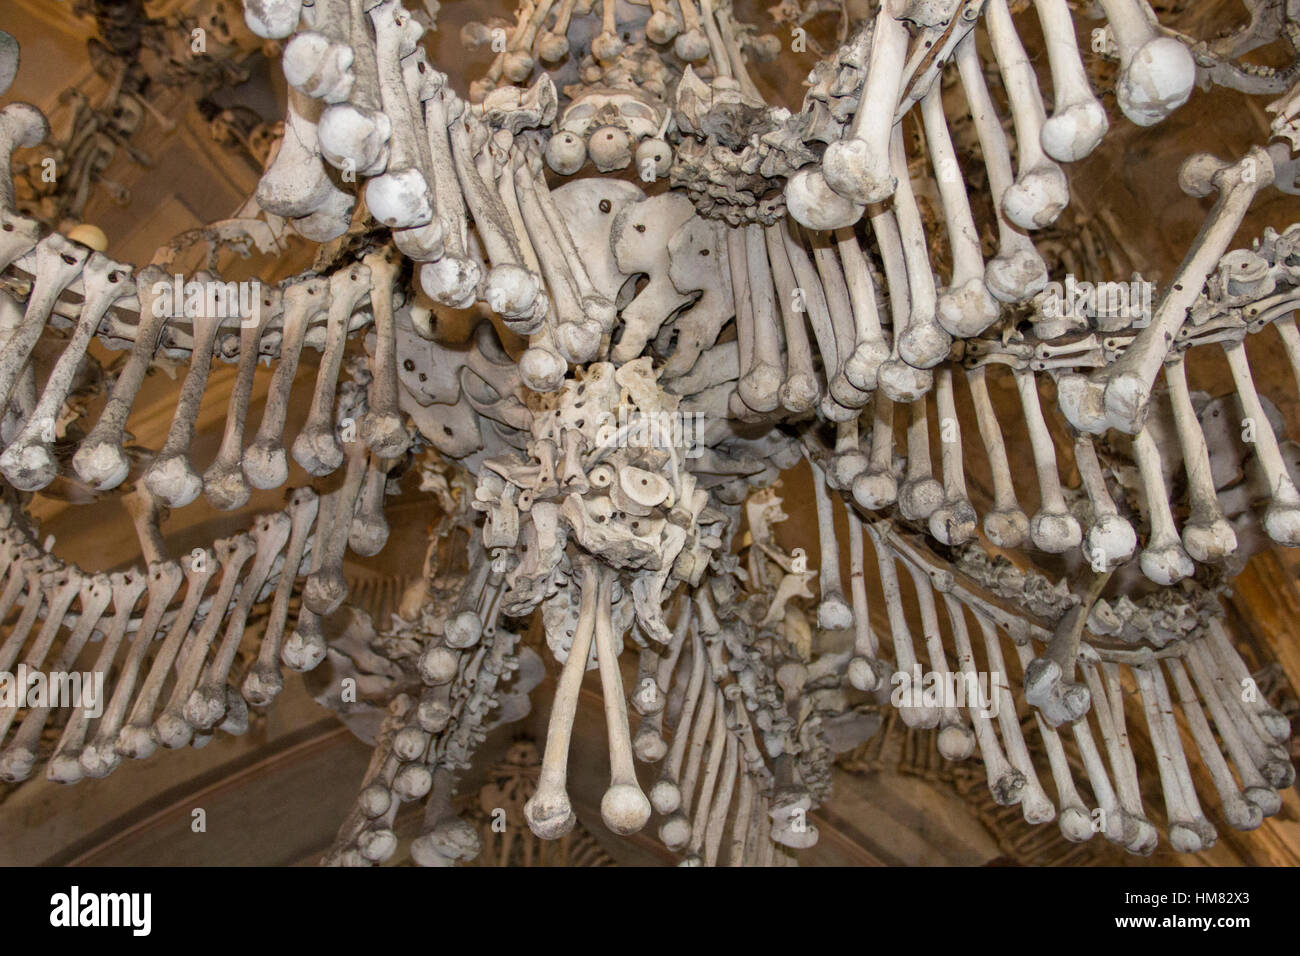 Detail Of A Chandelier Made Entirely Human Bones And Skulls In The Sedlec Ossuary Near Town Kutna Hora Czech Republic